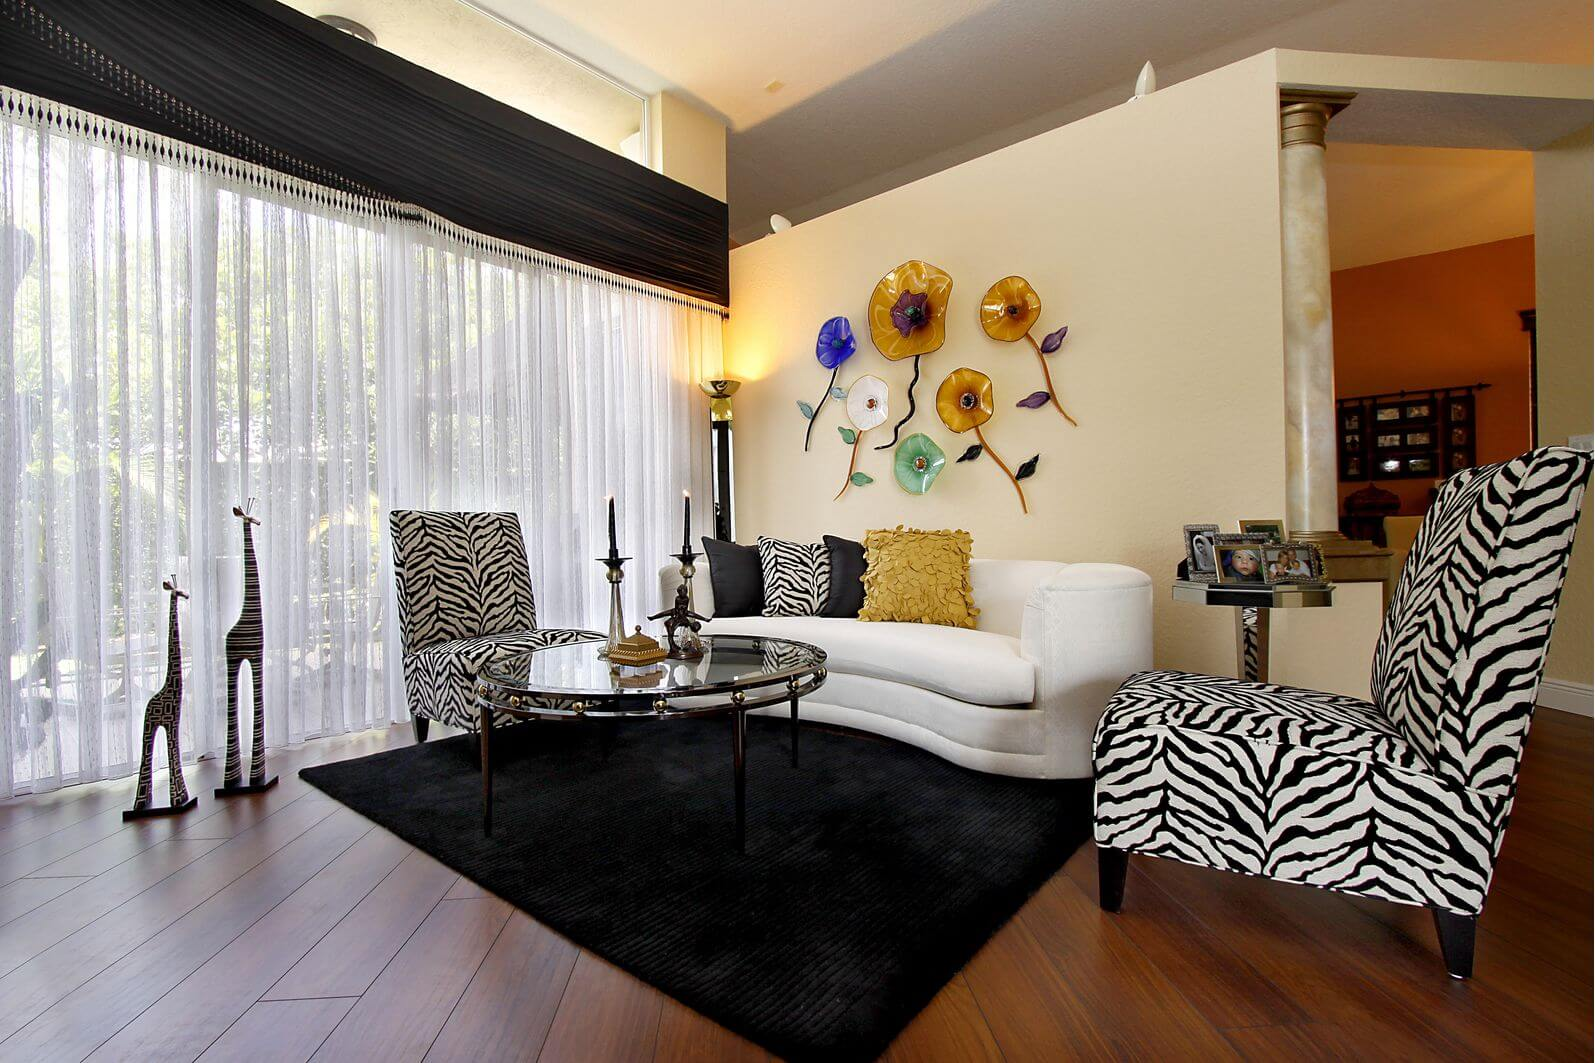 Superbe Small Living Room With 2 Zebra Print Armless Chairs, One Small White Sofa,  Glass